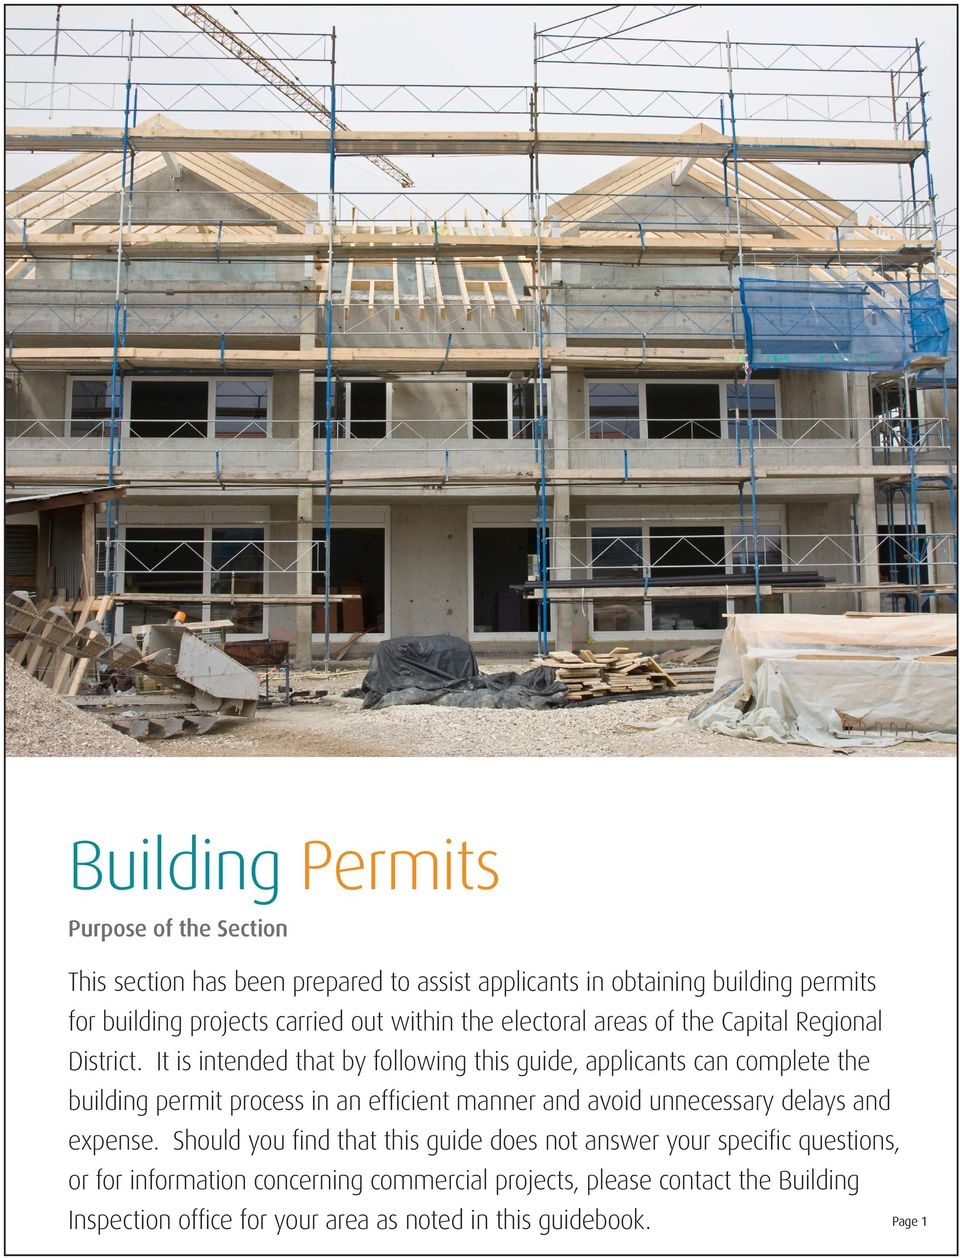 It is intended that by following this guide, applicants can complete the building permit process in an efficient manner and avoid unnecessary delays